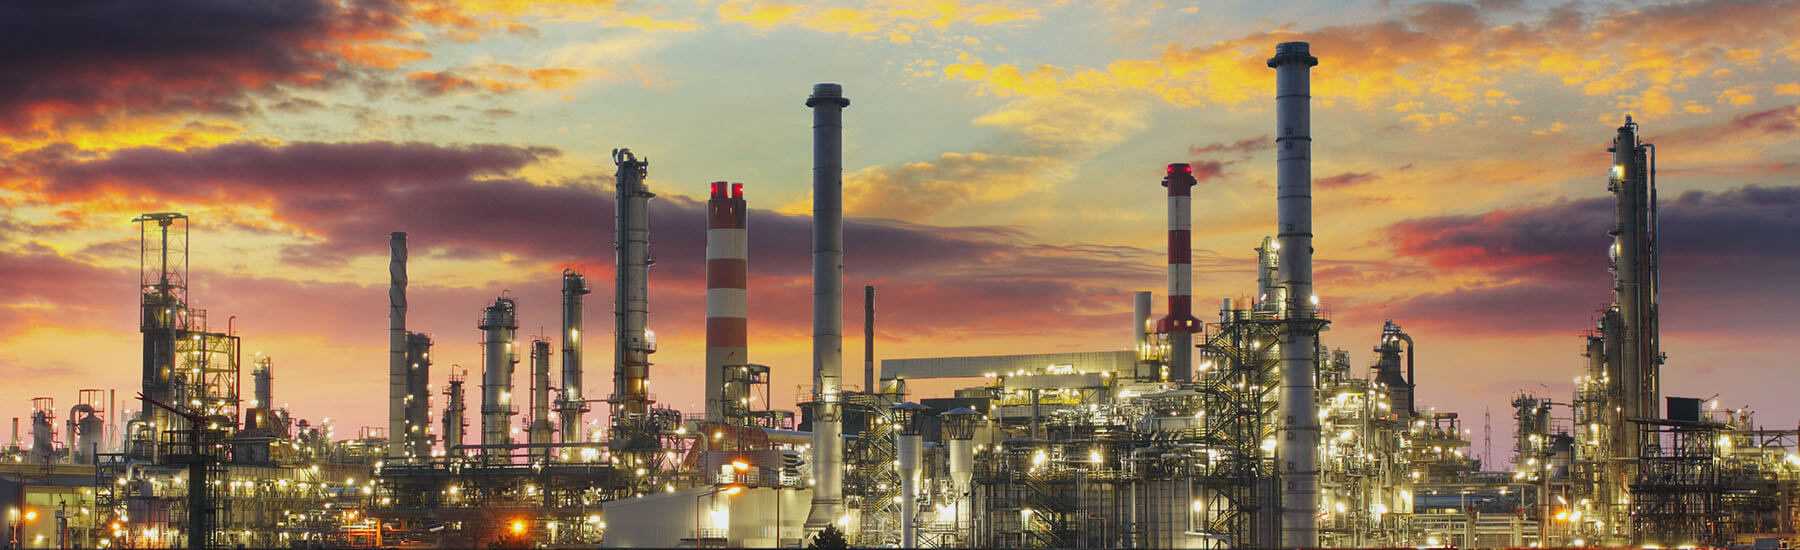 Petrochemical Industry Banner